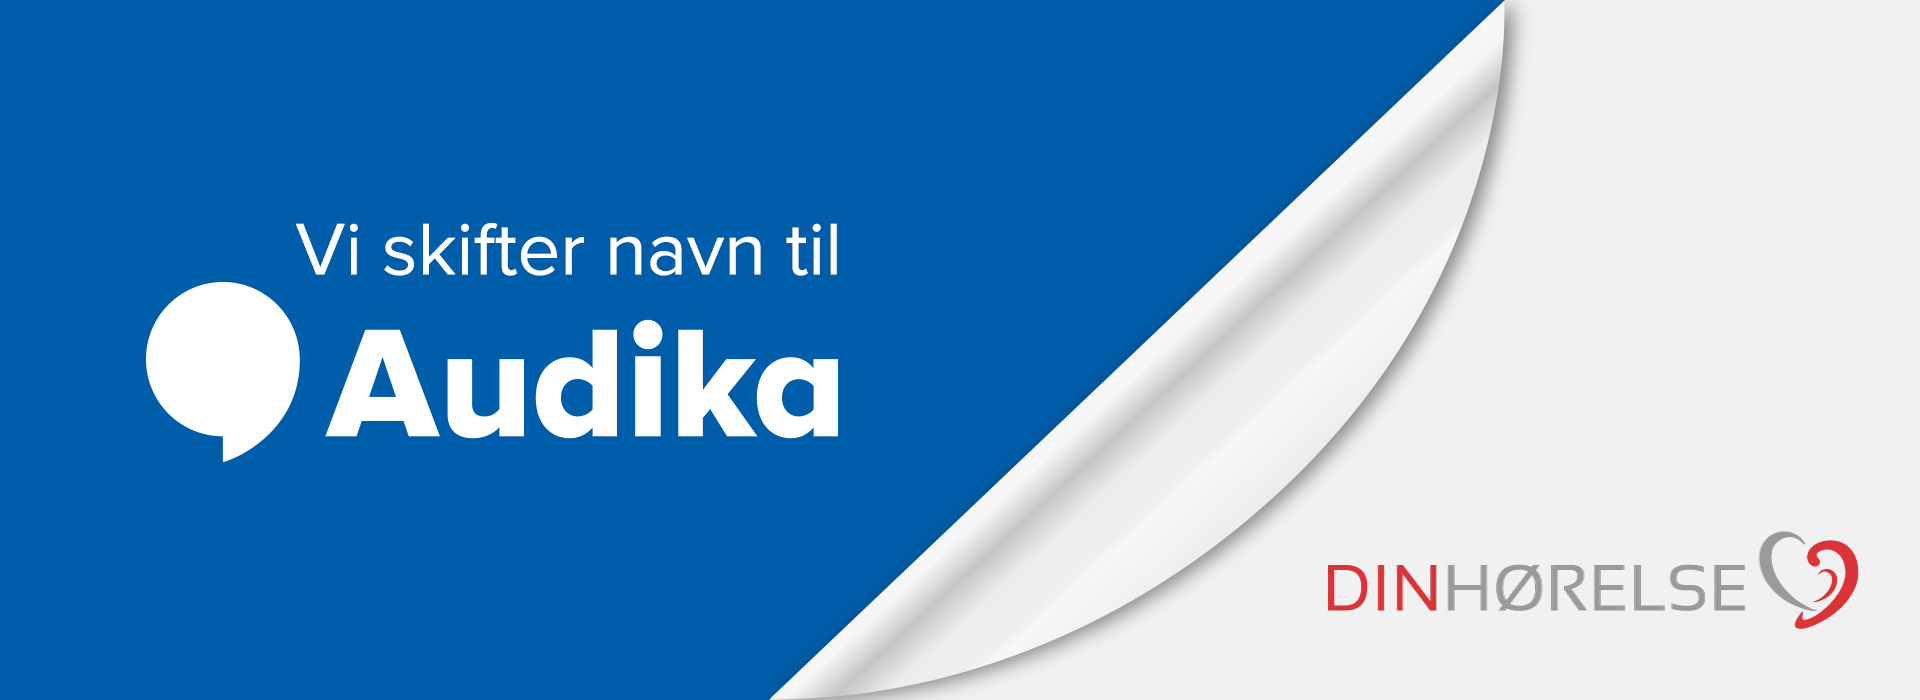 introbanner-dh-to-audika-3-1920x700